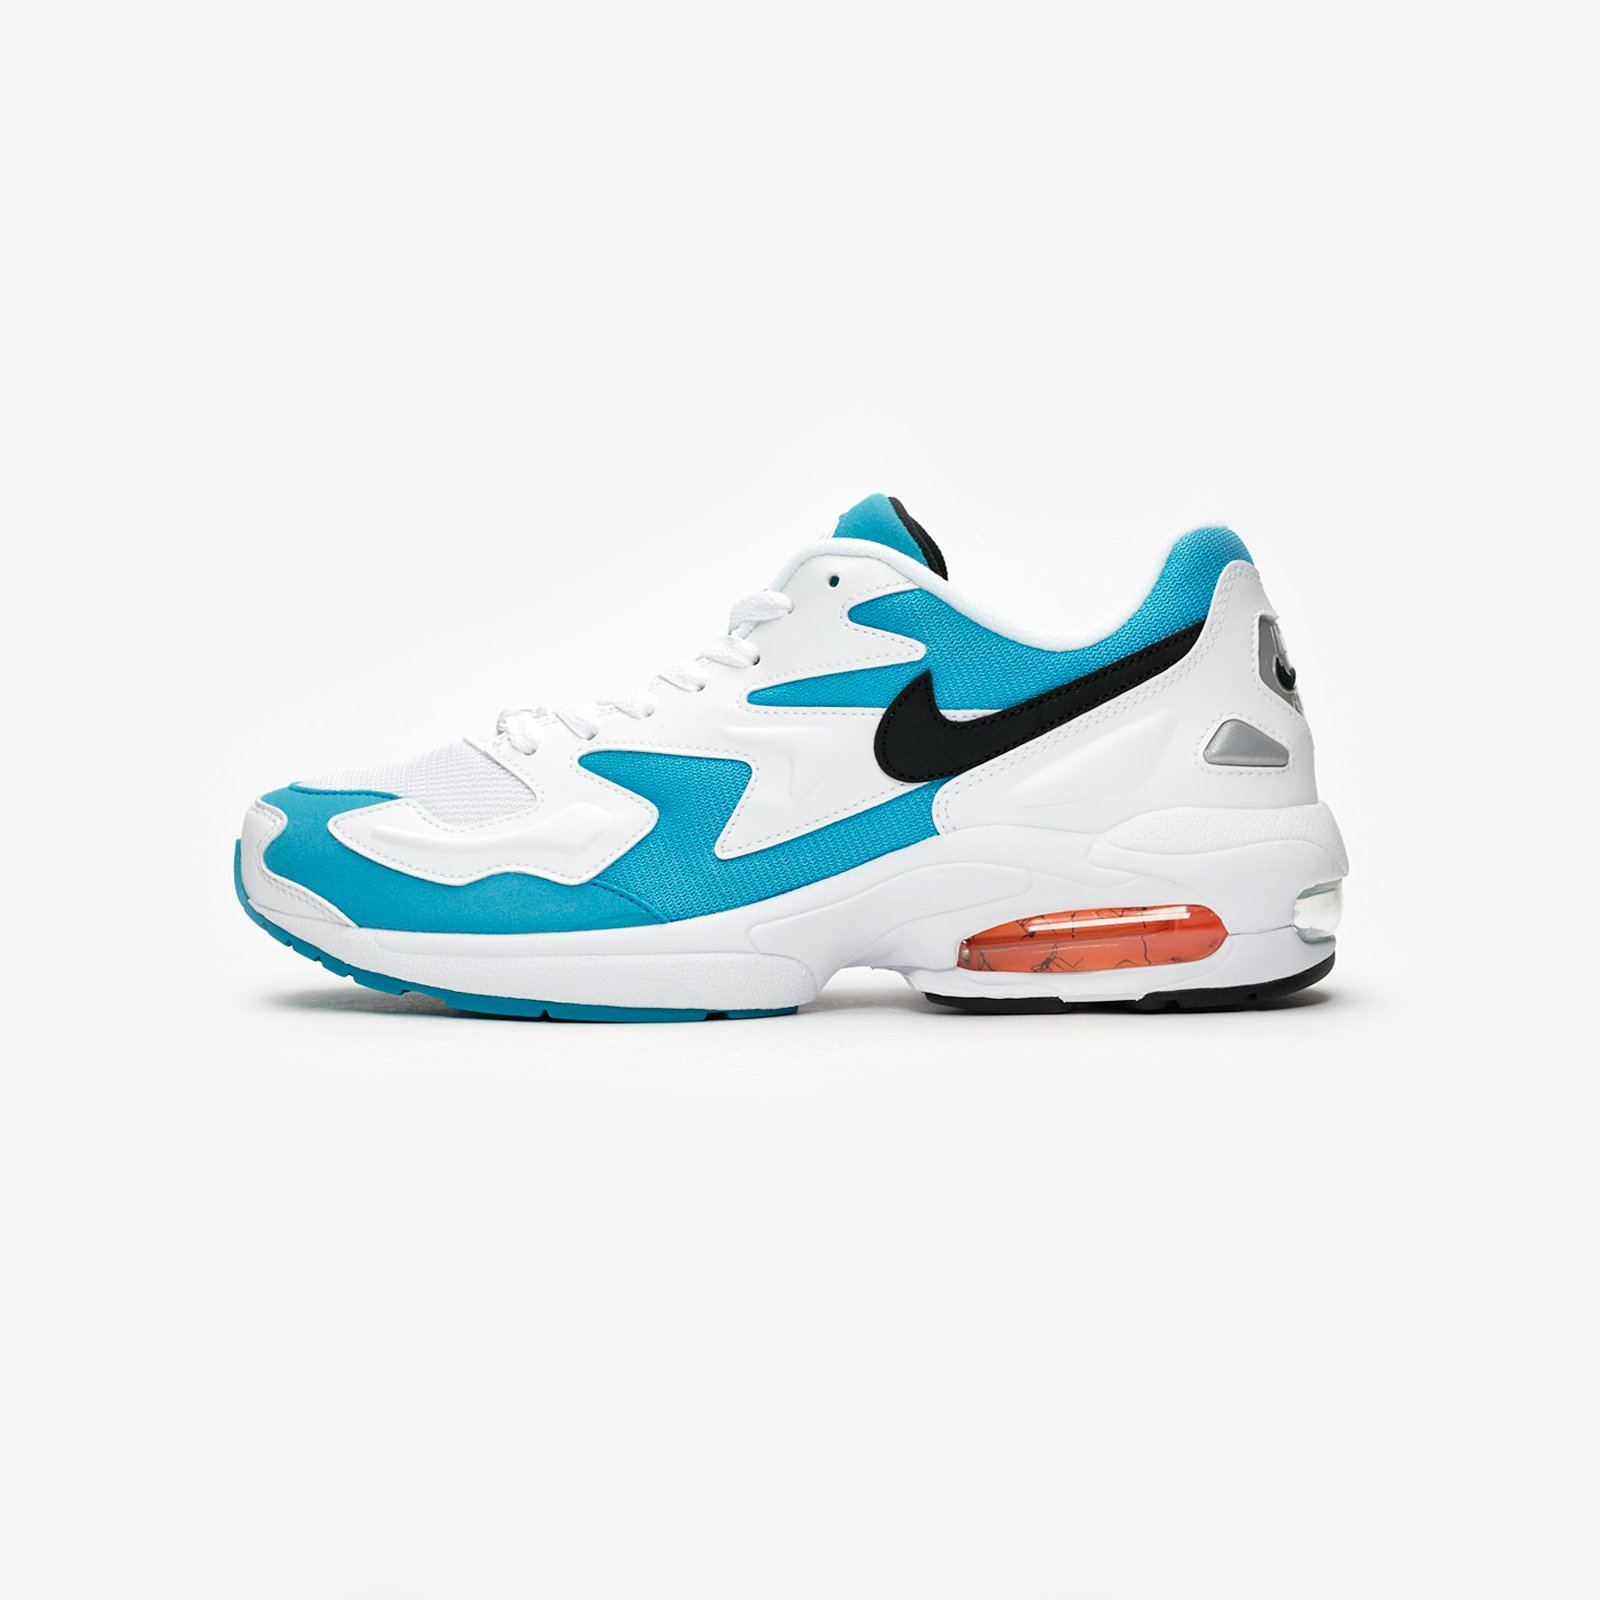 detailed look e651c 75f9f Nike Air Max2 Light - Ao1741-100 - Sneakersnstuff   sneakers   streetwear  online since 1999